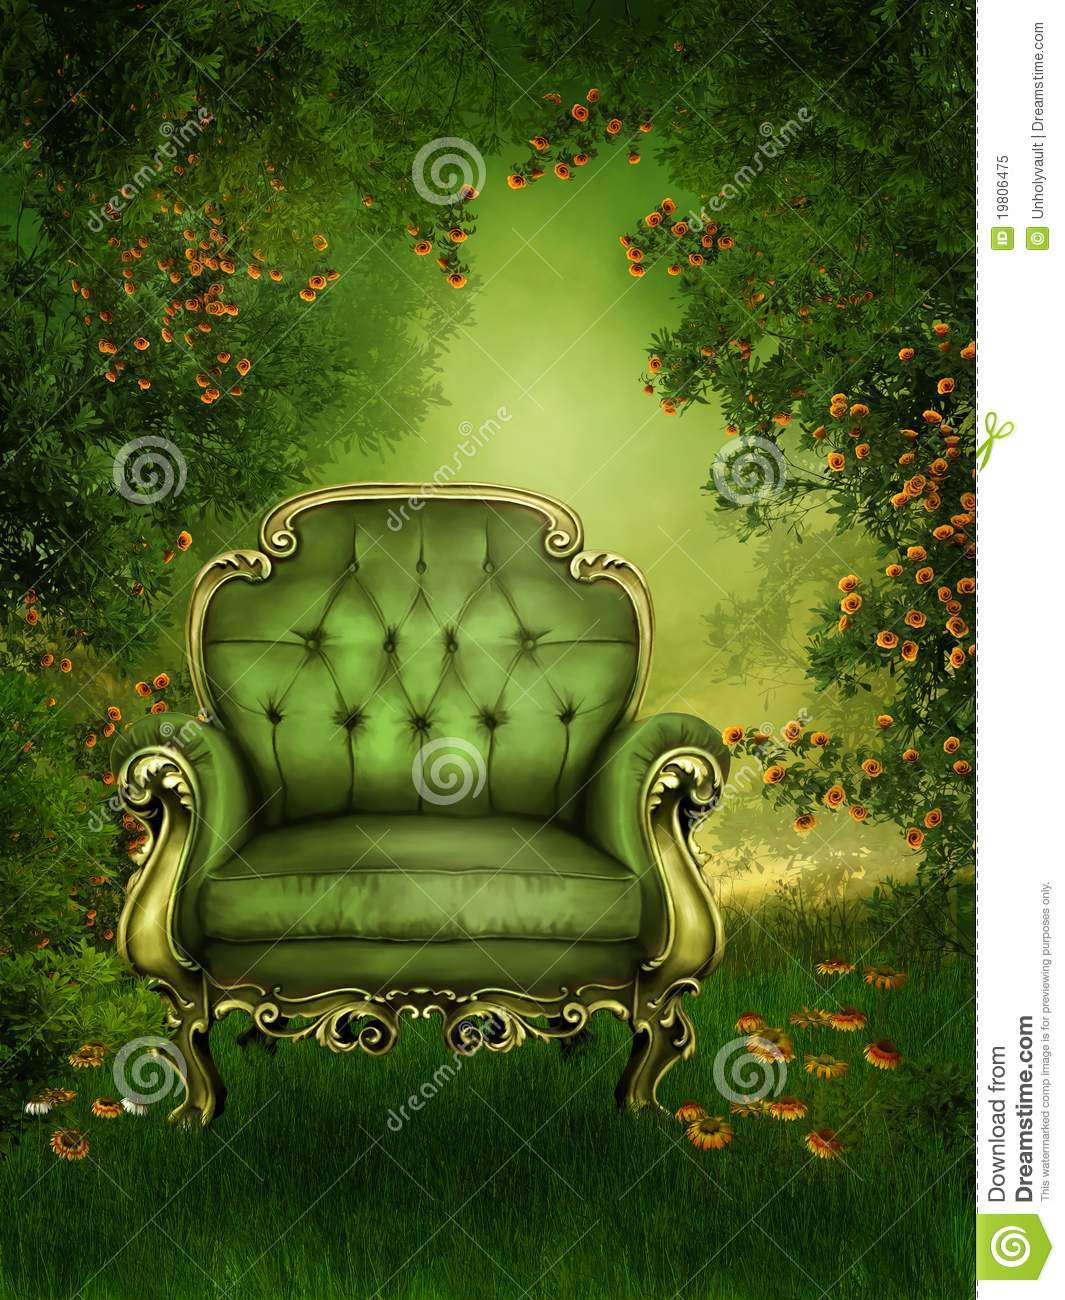 Old Chair In A Green Garden Royalty Free Stock Photo - Image: 19806475